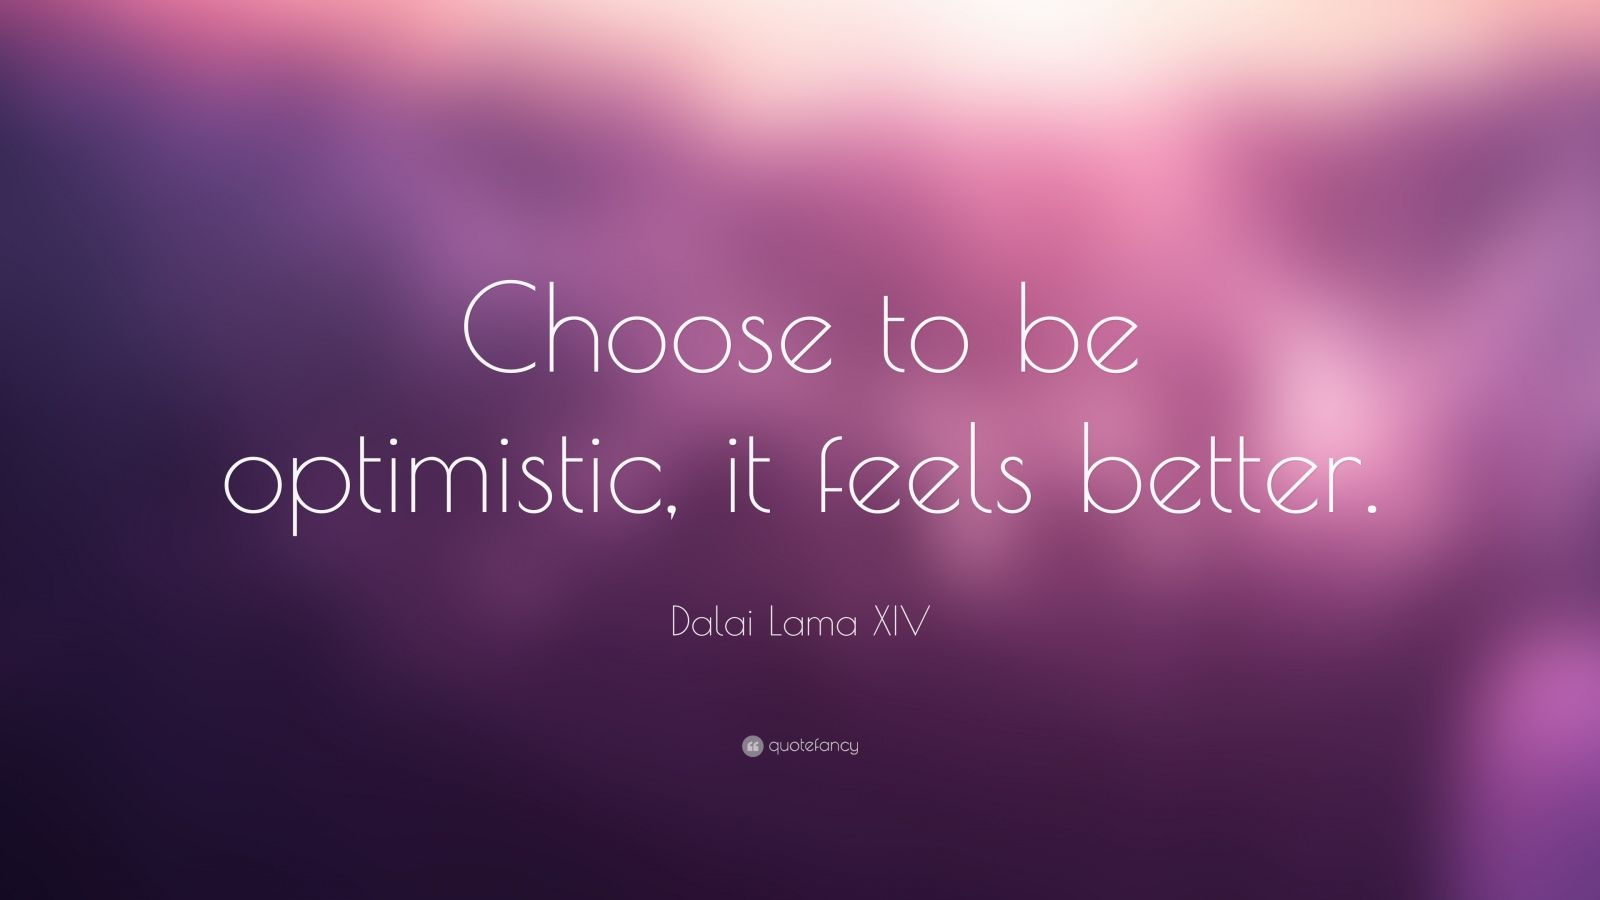 Motivational Quotes On Attitude Wallpapers Dalai Lama Xiv Quote Choose To Be Optimistic It Feels